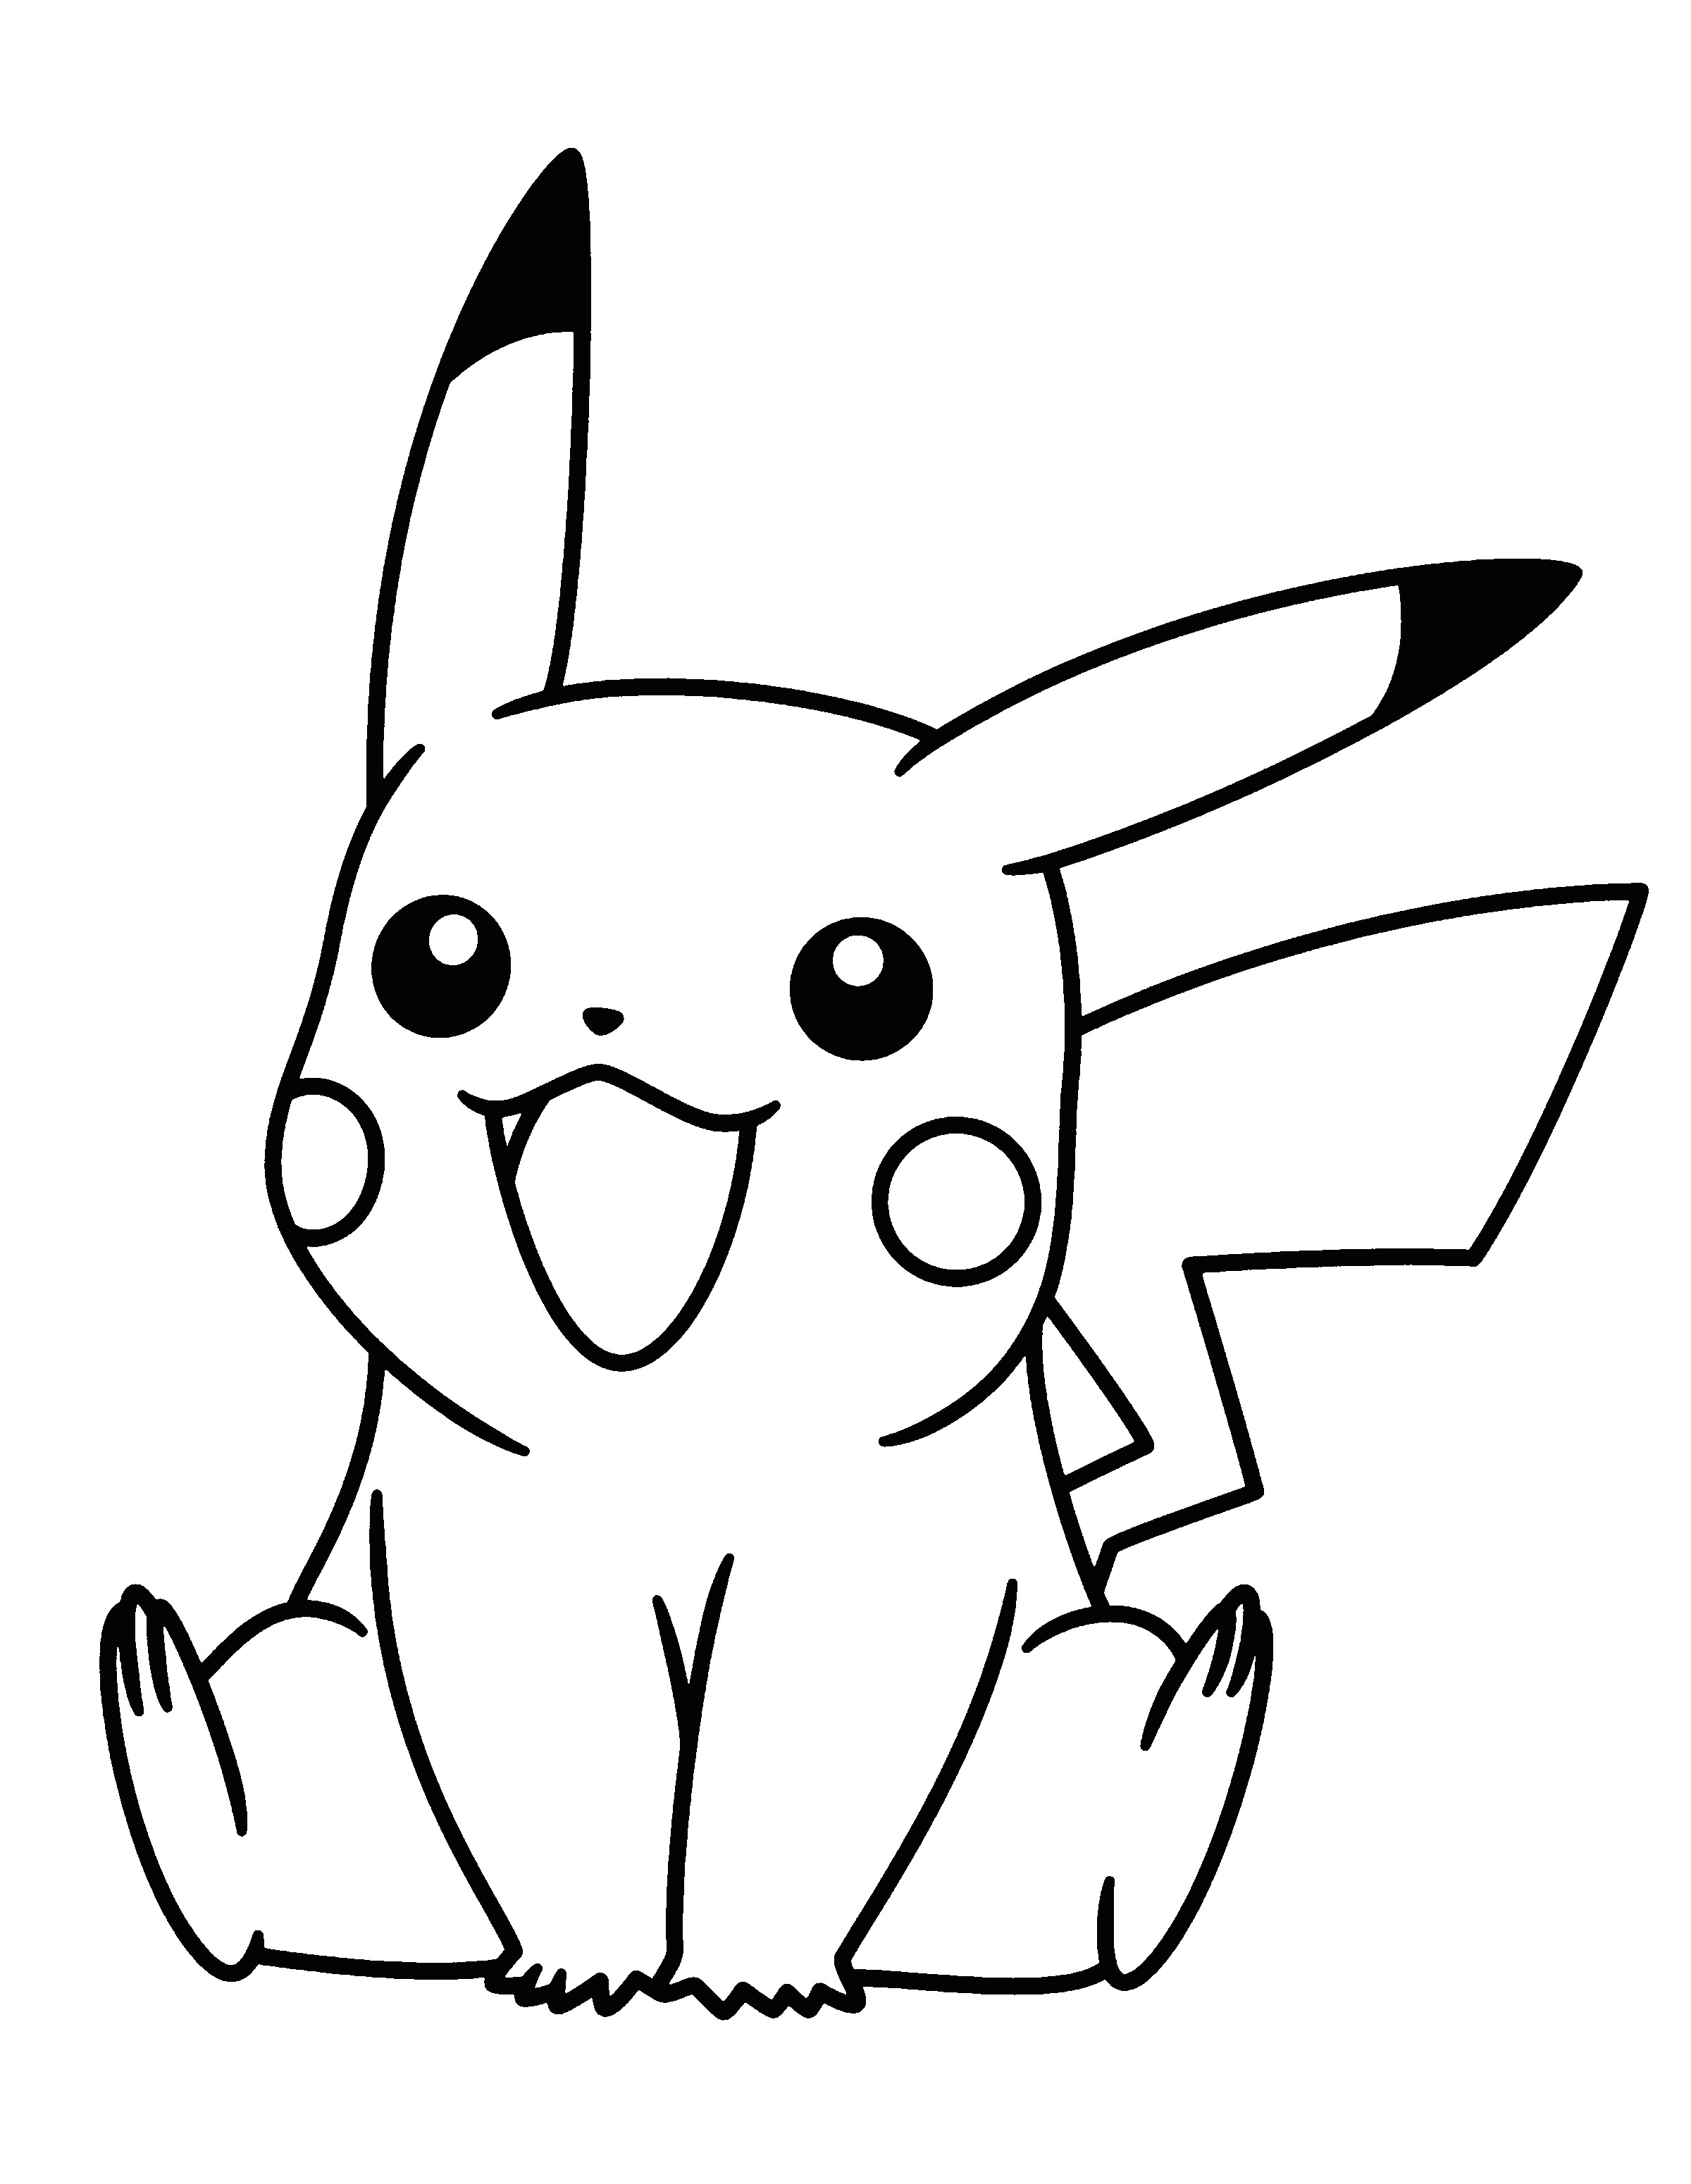 pikachu coloring page pokemon colouring pages cartoon coloring pages free coloring coloring